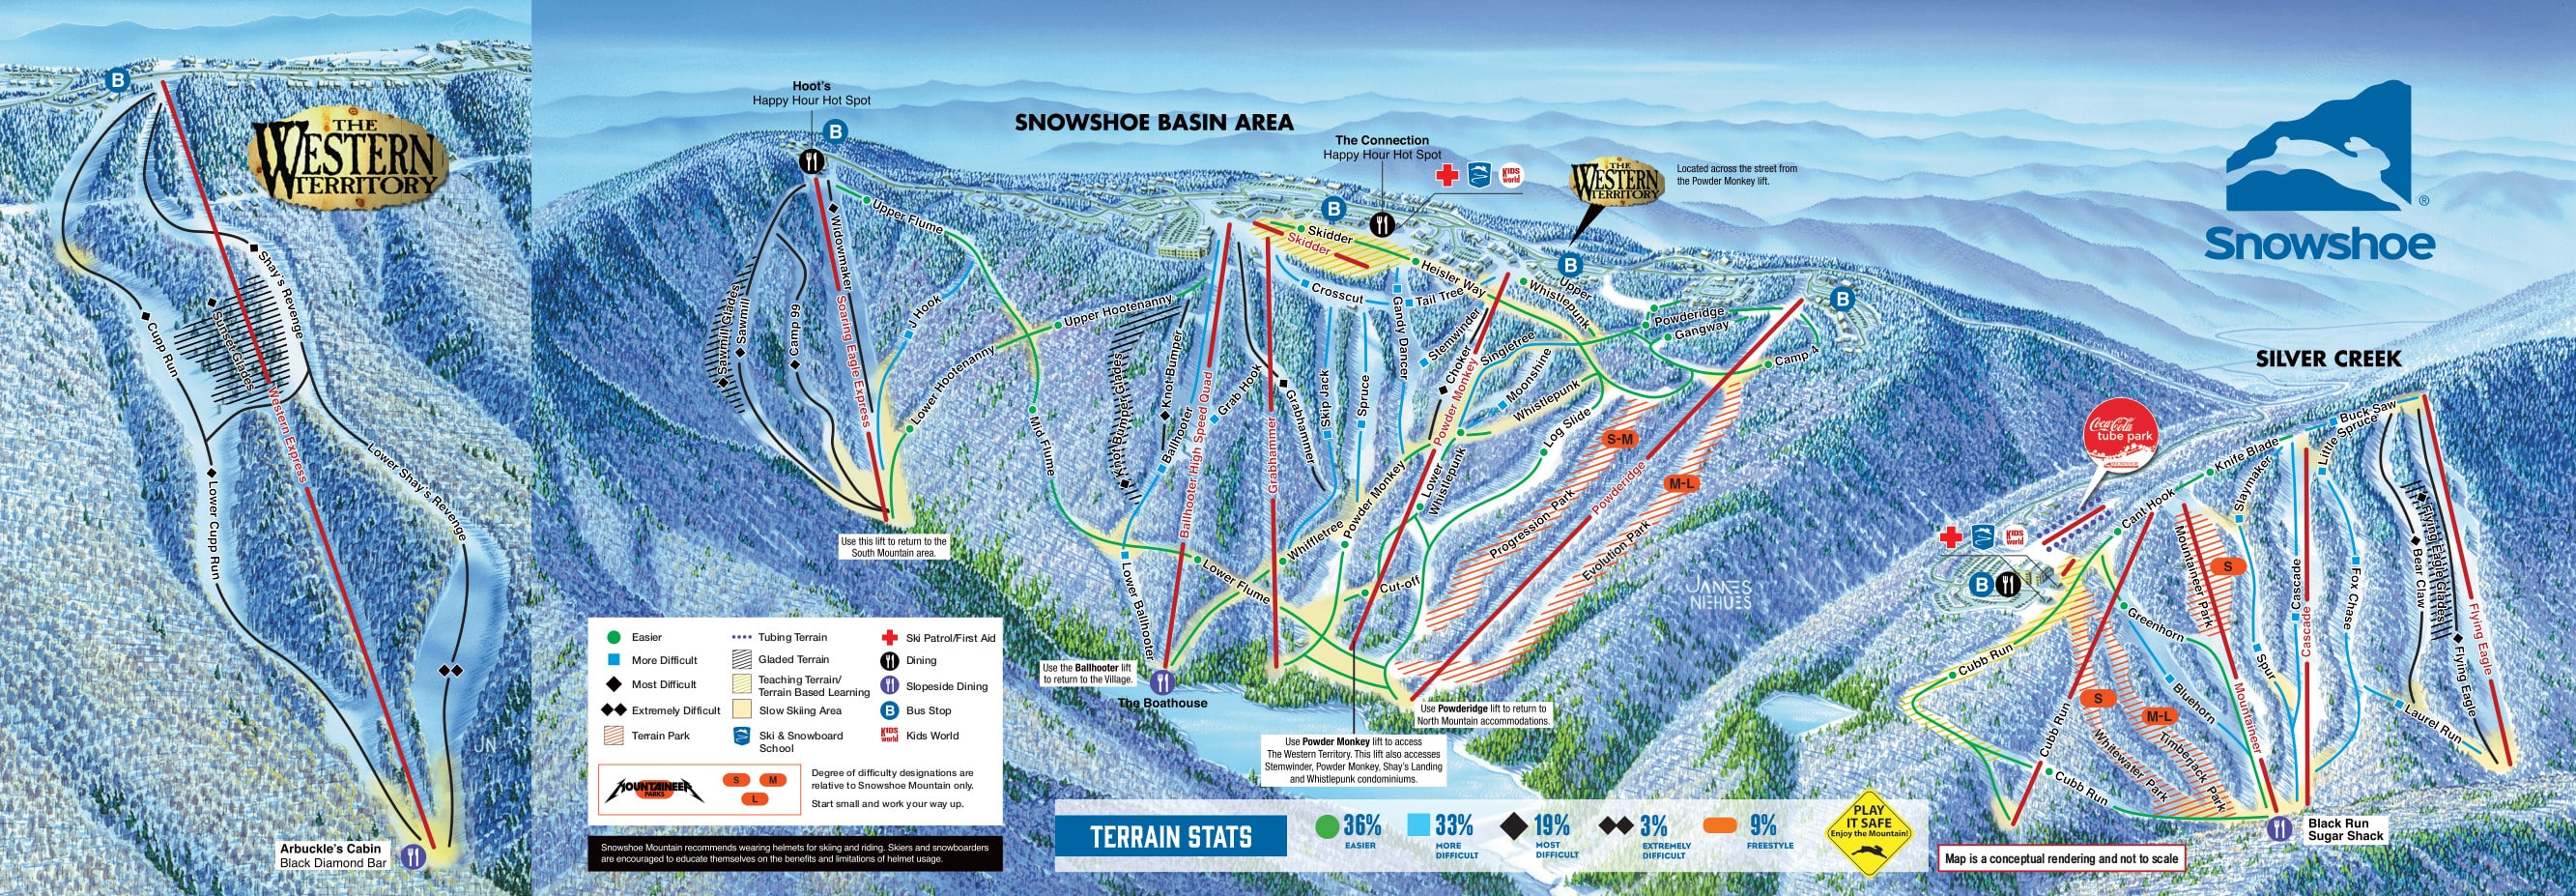 Snowshoe Mountain Resort Piste / Trail Map